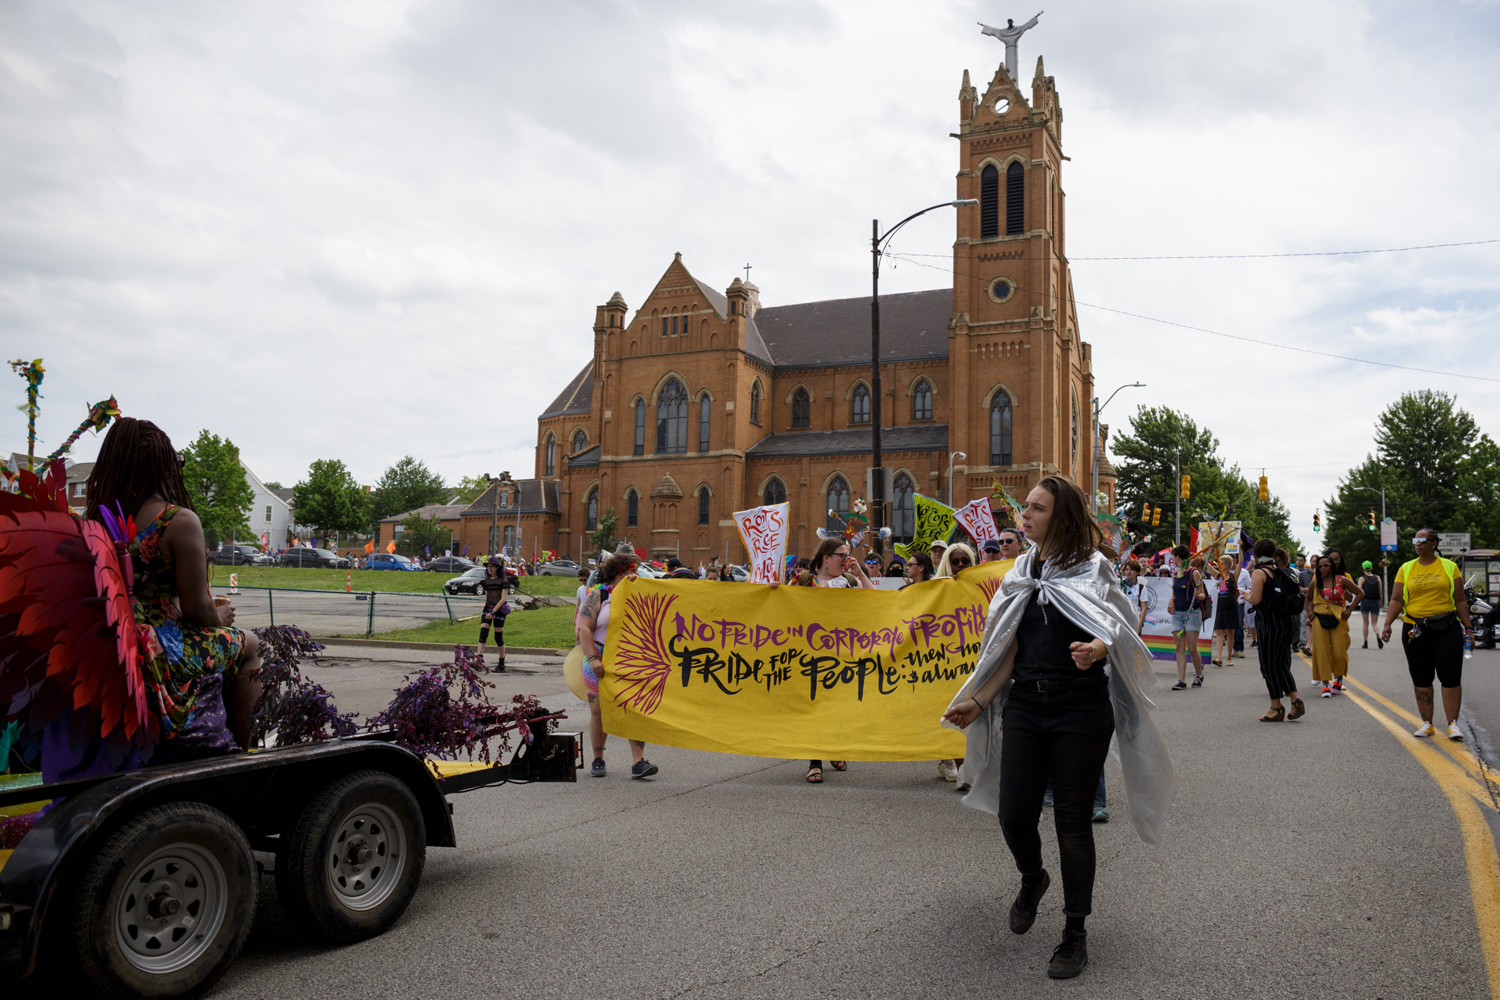 The People's Pride march kicks off from Freedom Corner.